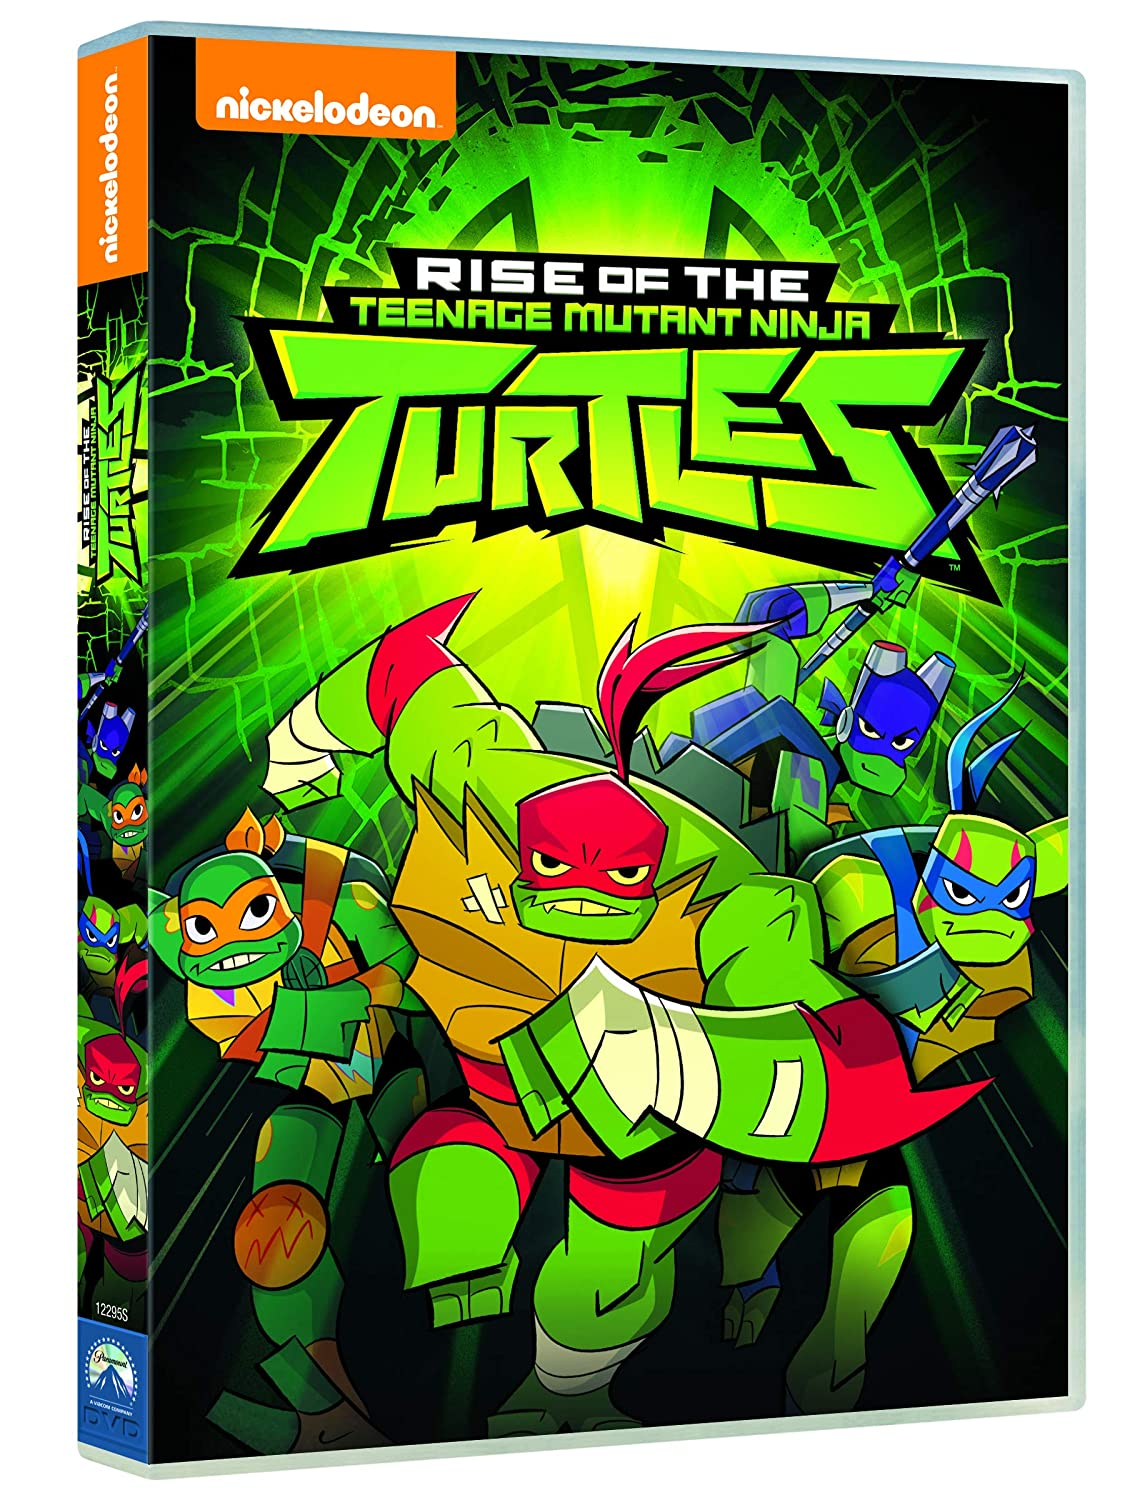 Rise Of The Teenage Mutant Ninja Turtles 1 [DVD]: Amazon.es ...